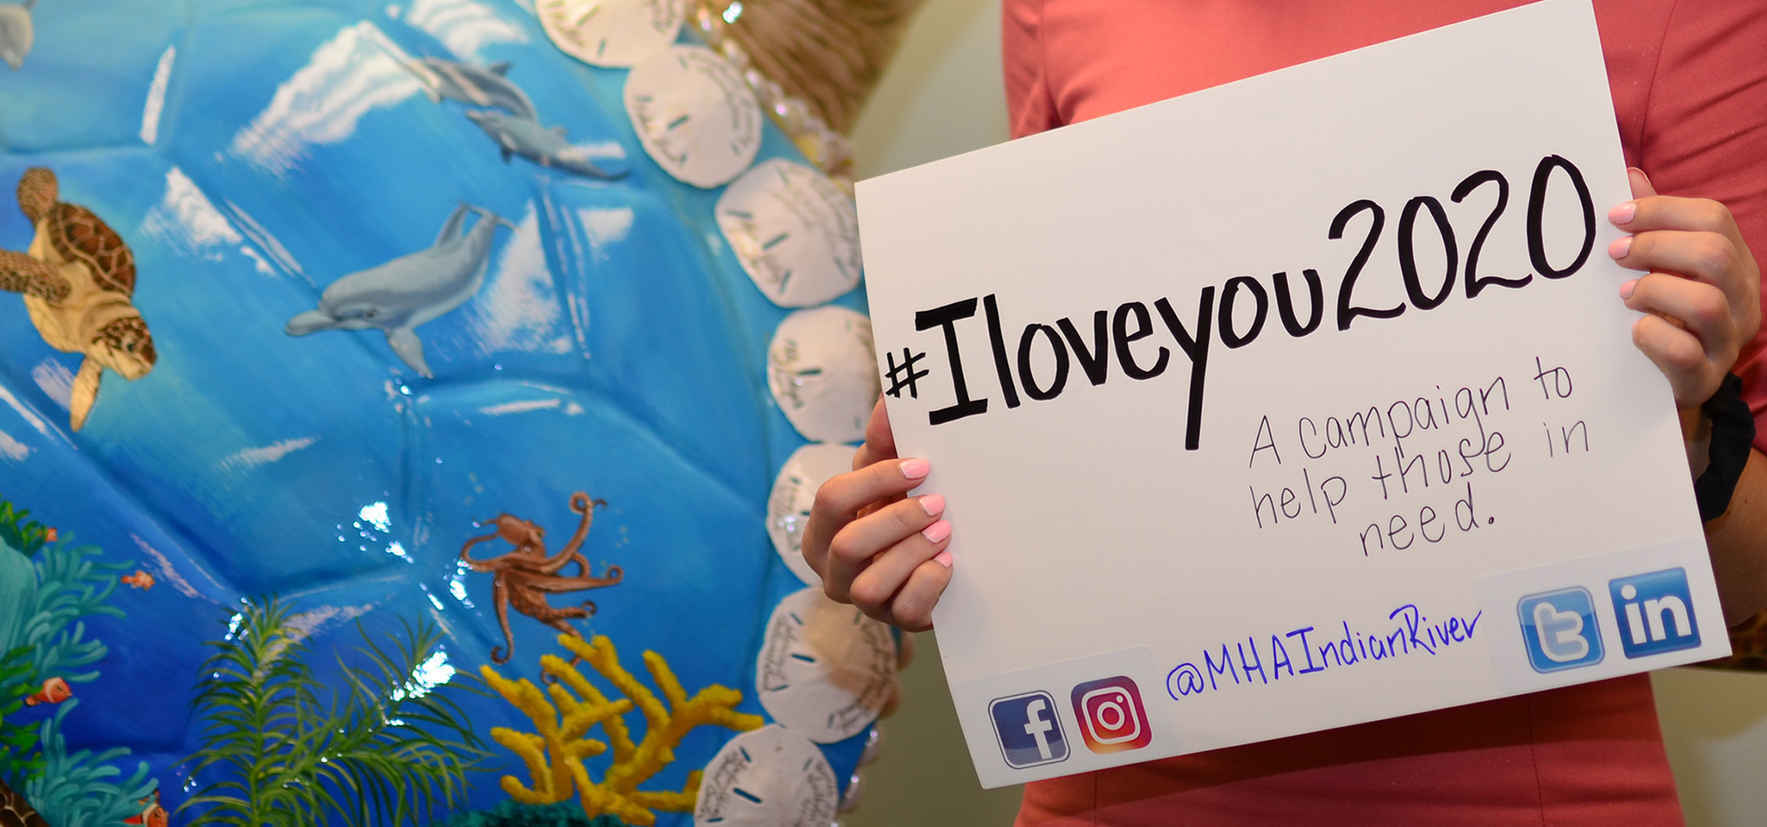 #ILoveYou2020 is a MOVEMENT, not a fad. image